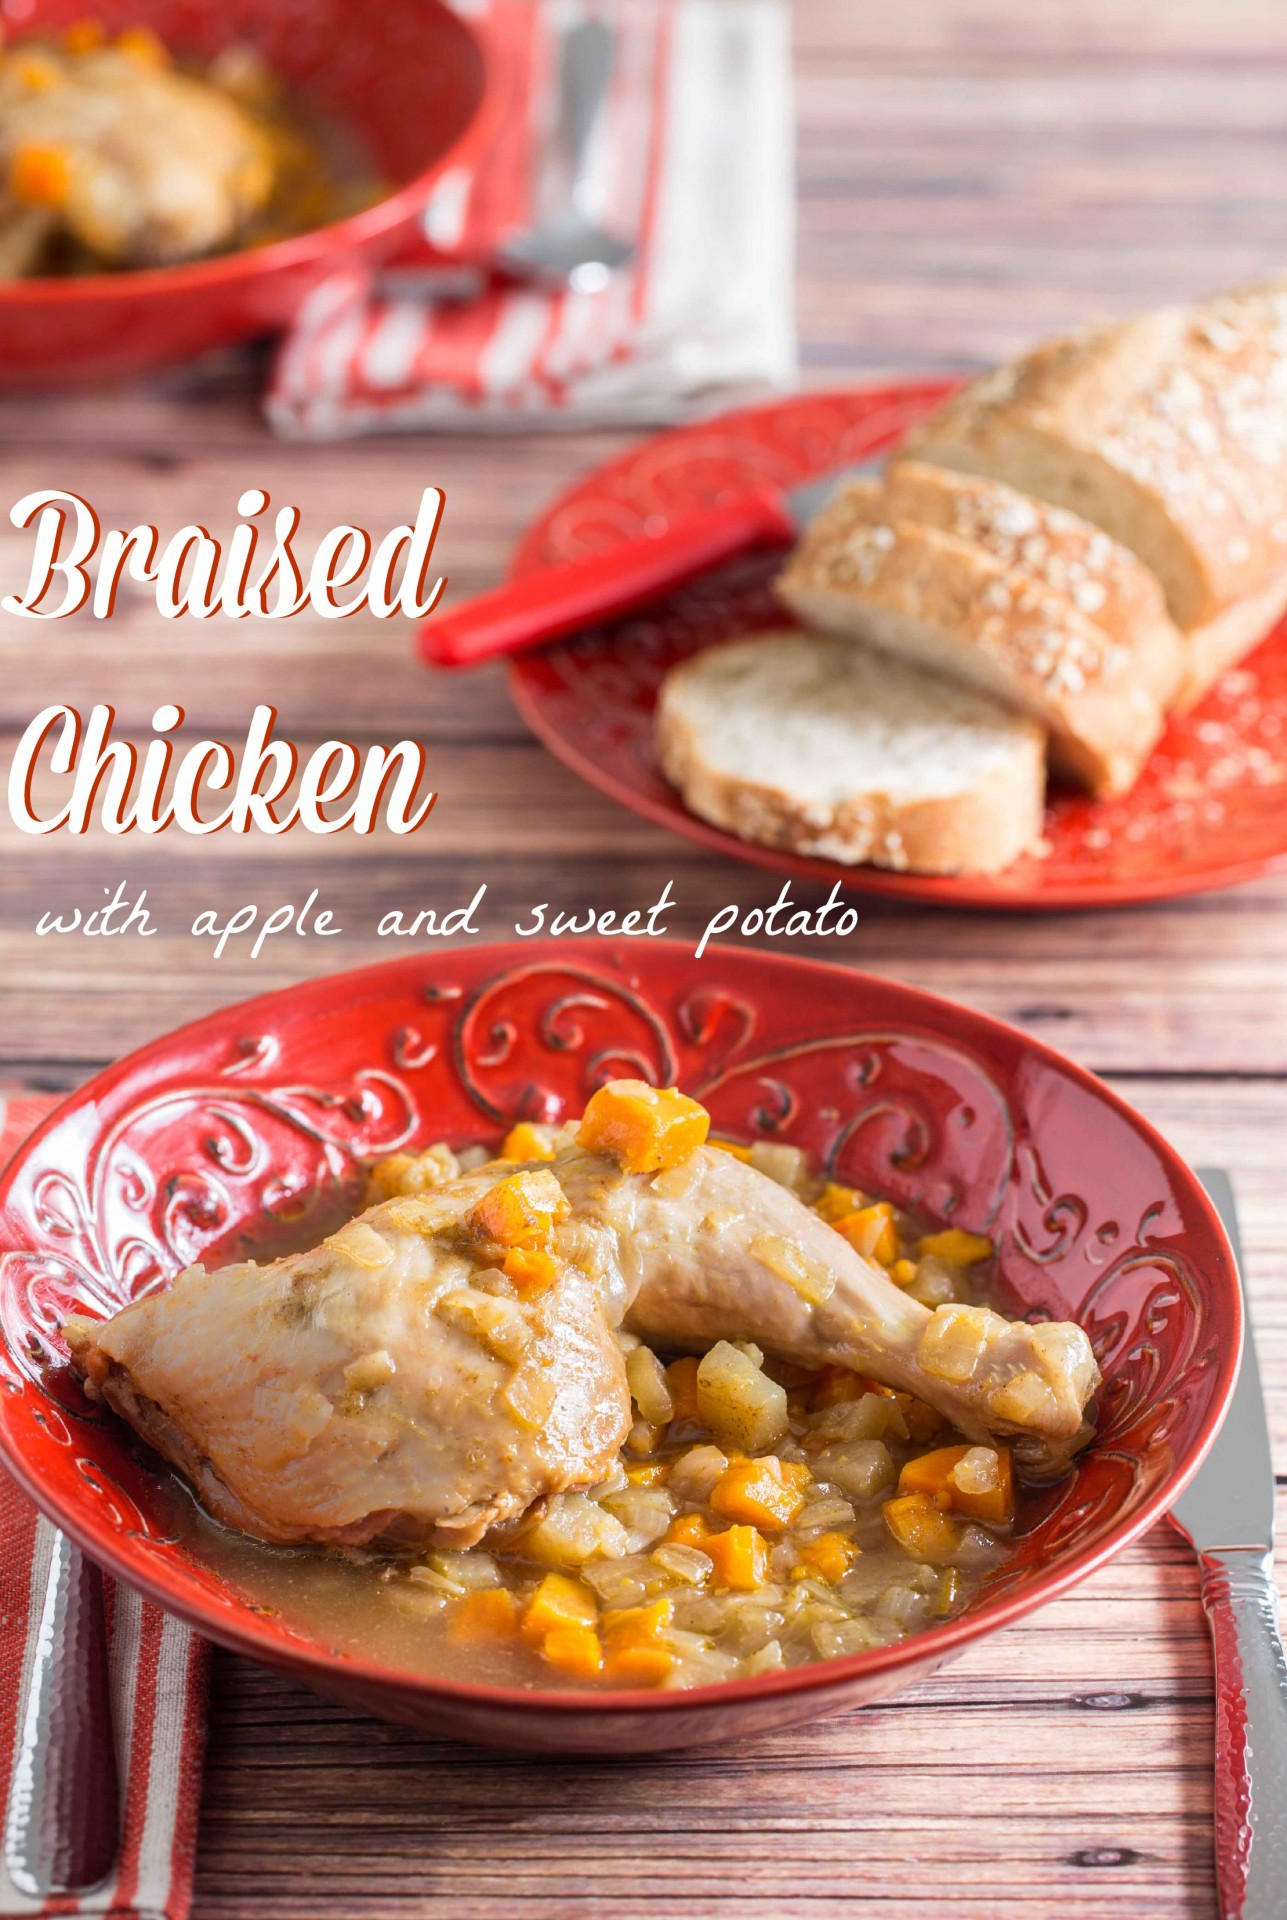 Braised Chicken with Apples